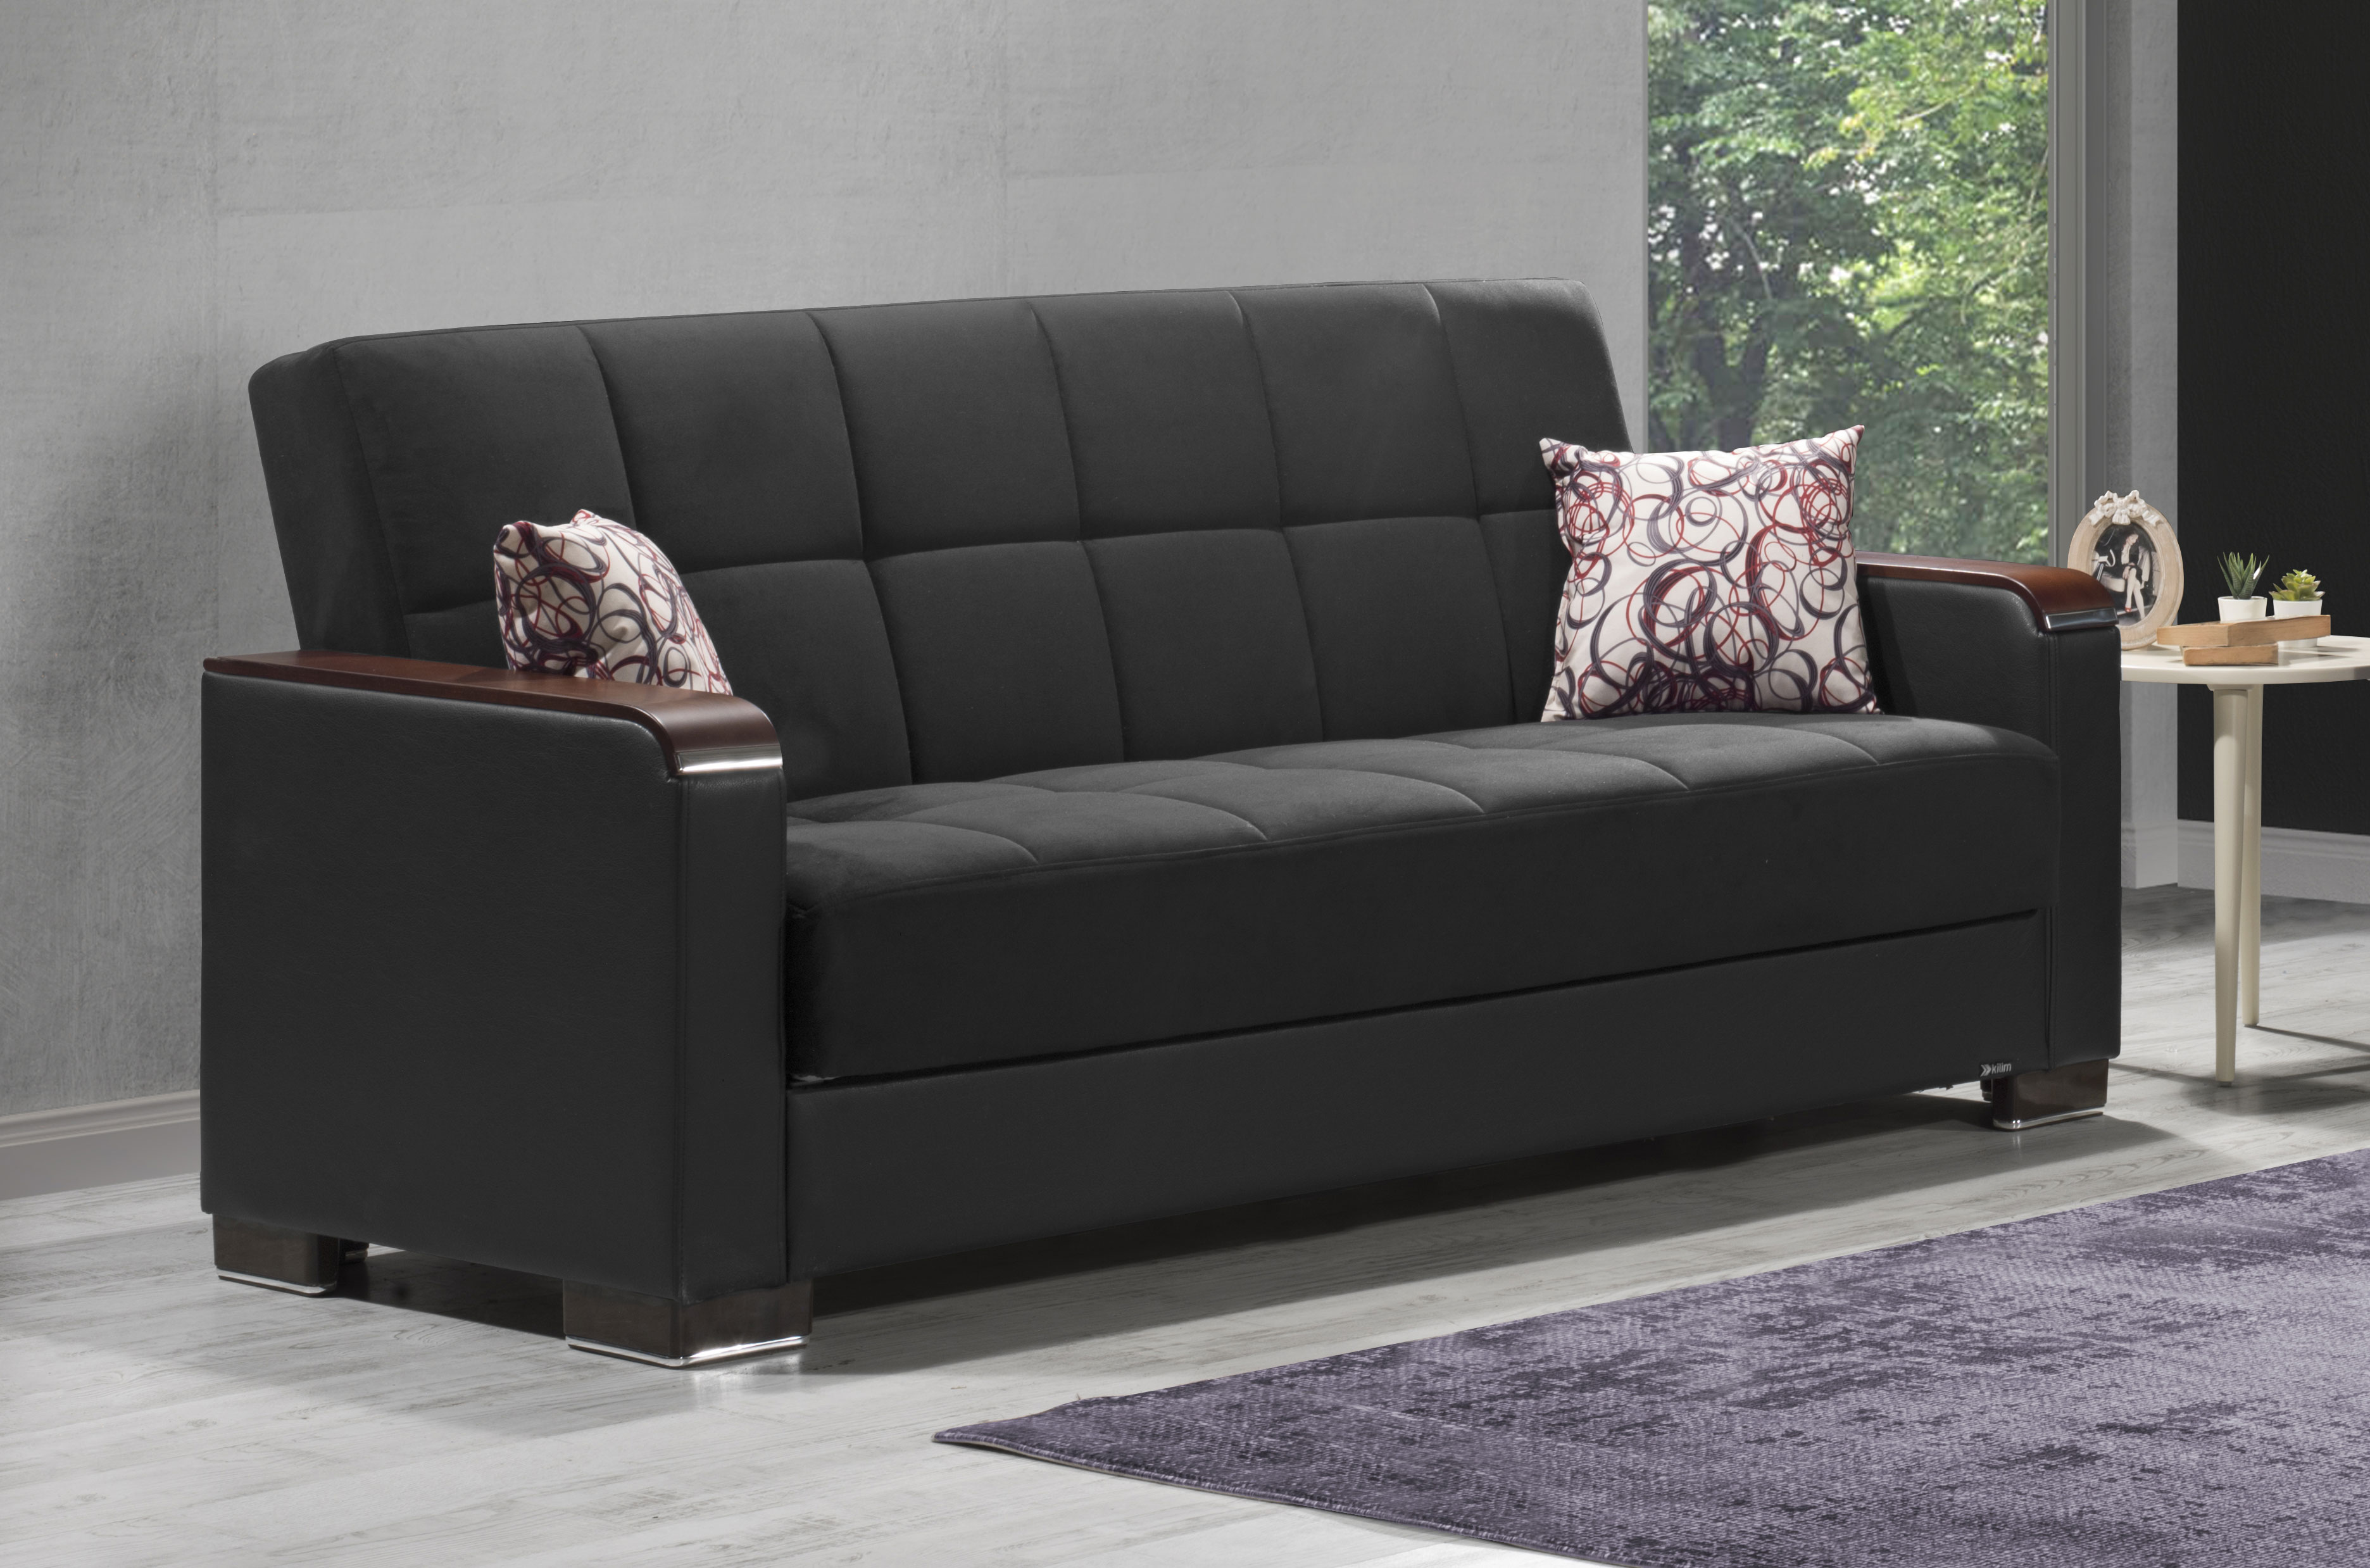 Picture of: Armada X Black Sofa Bed By Casamode